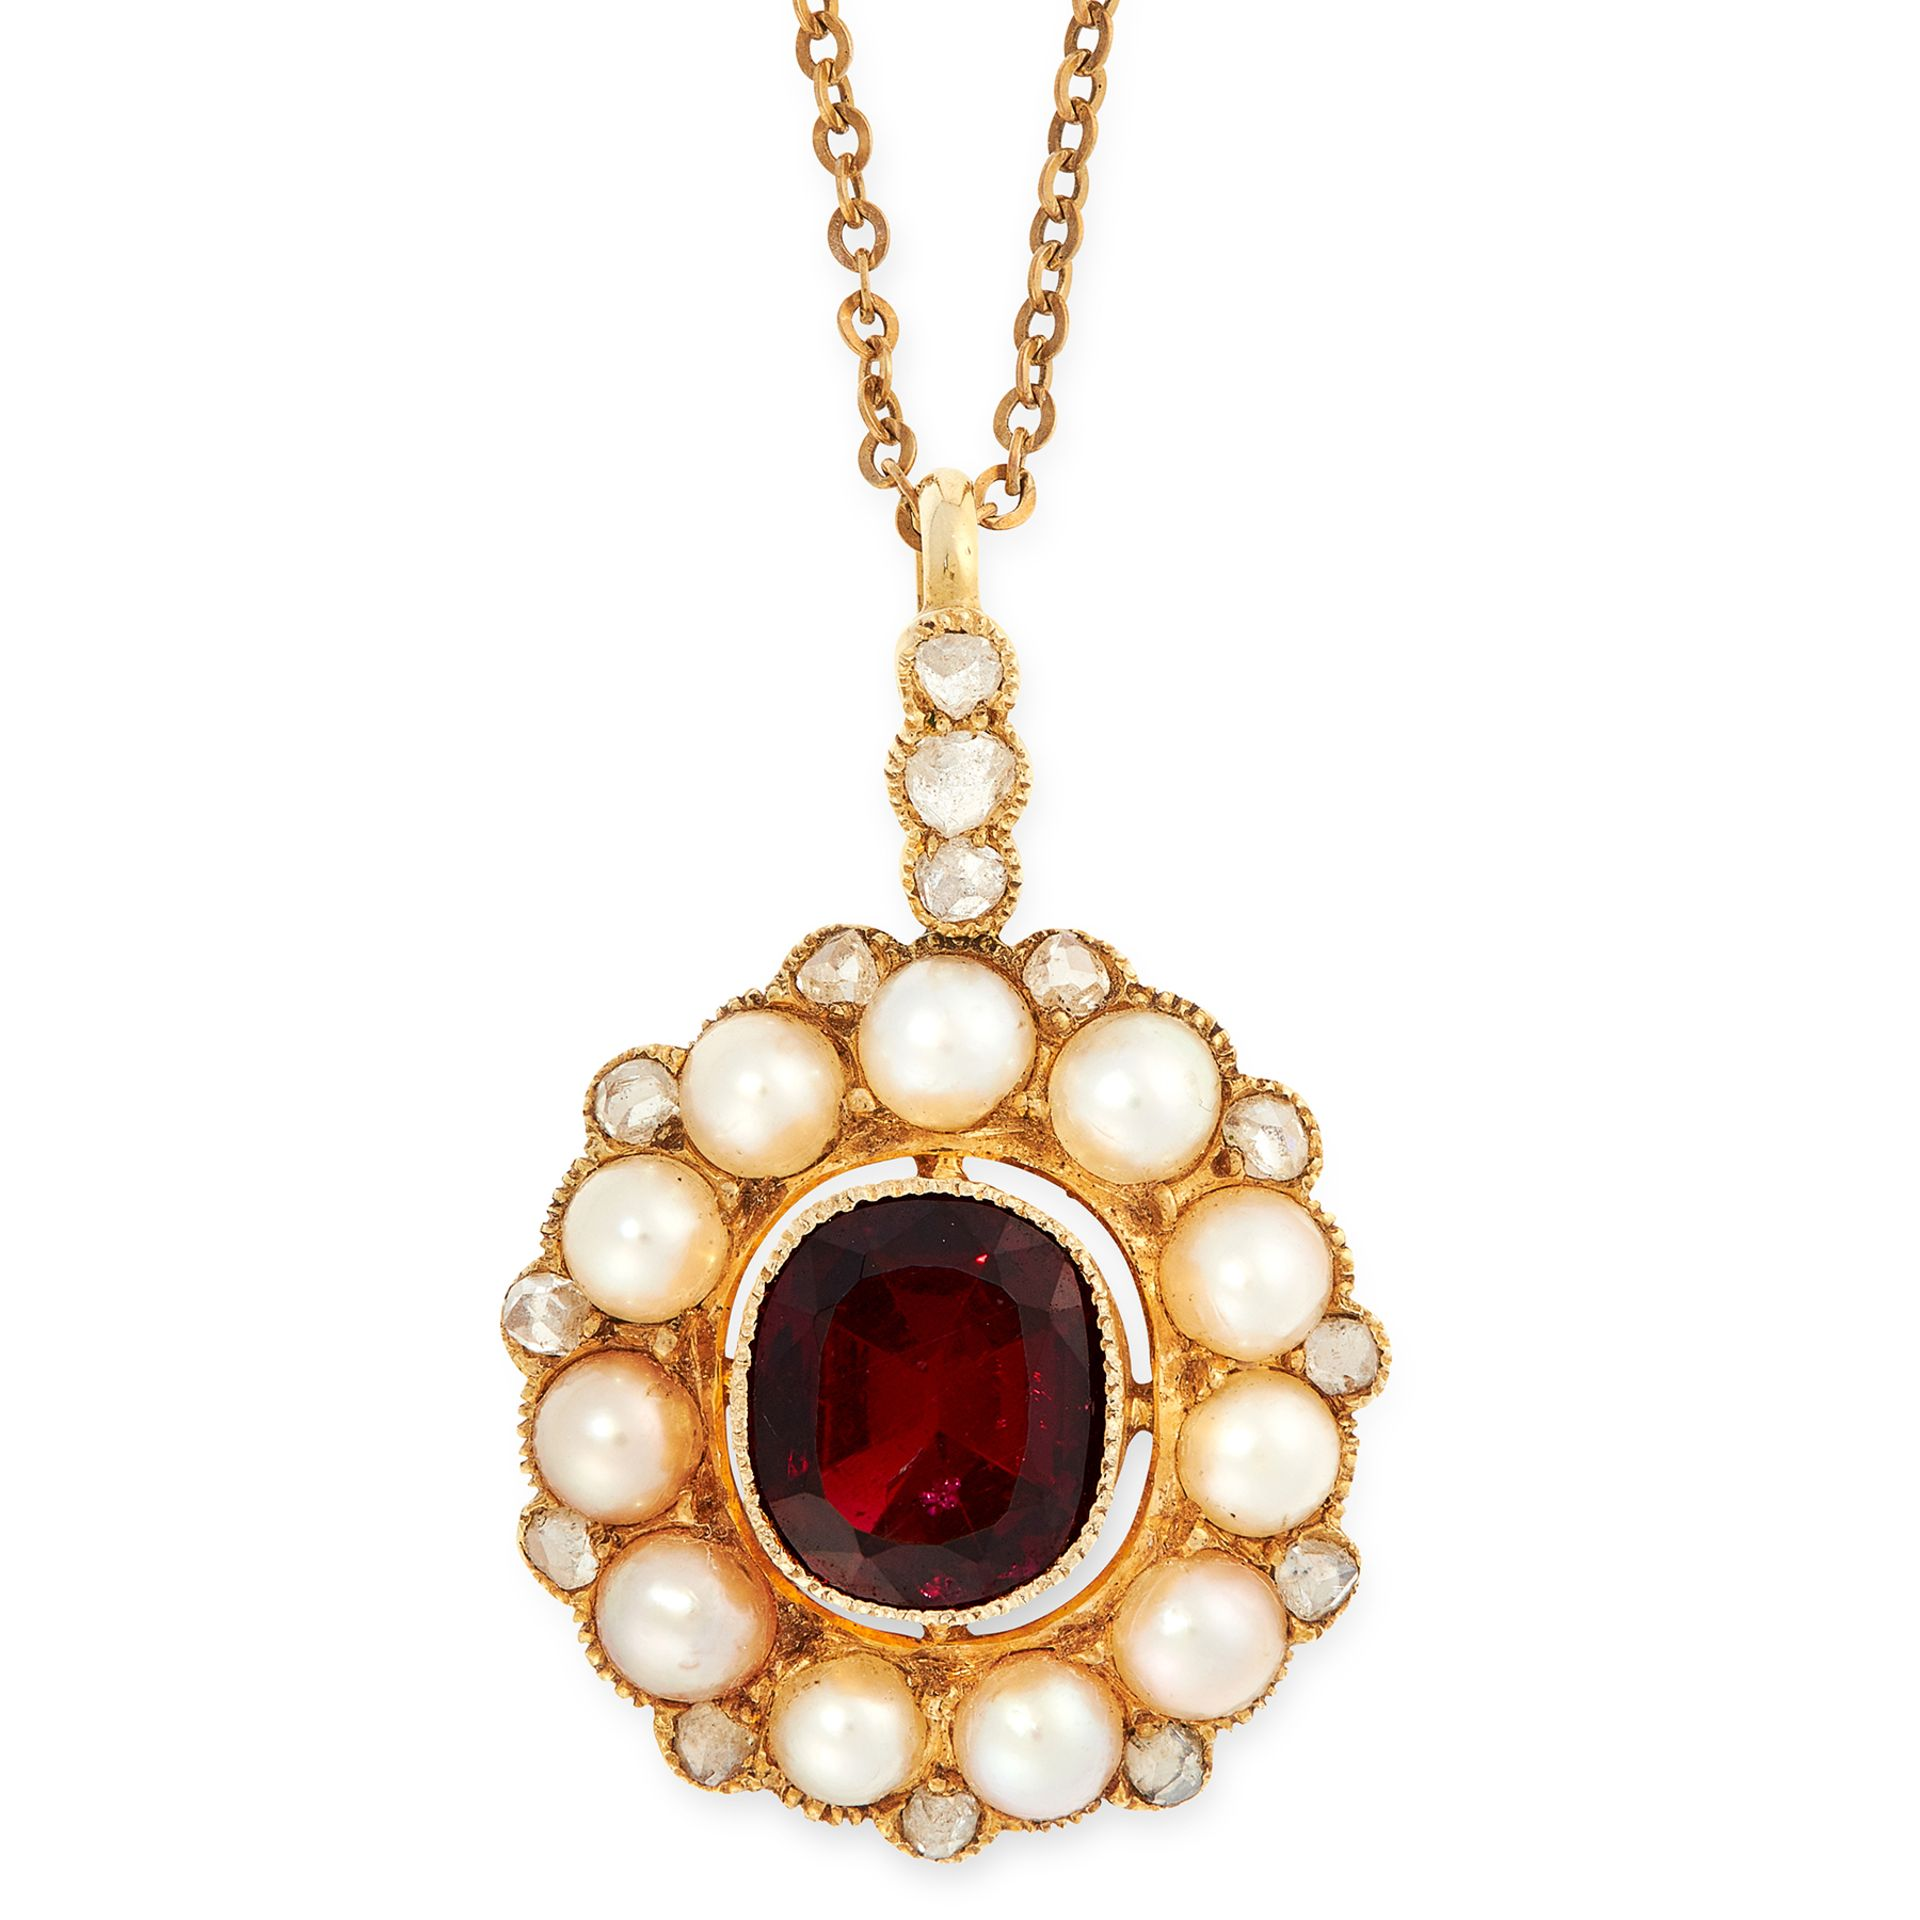 AN ANTIQUE GARNET, PEARL AND DIAMOND PENDANT AND CHAIN in yellow gold, set with a cushion cut garnet